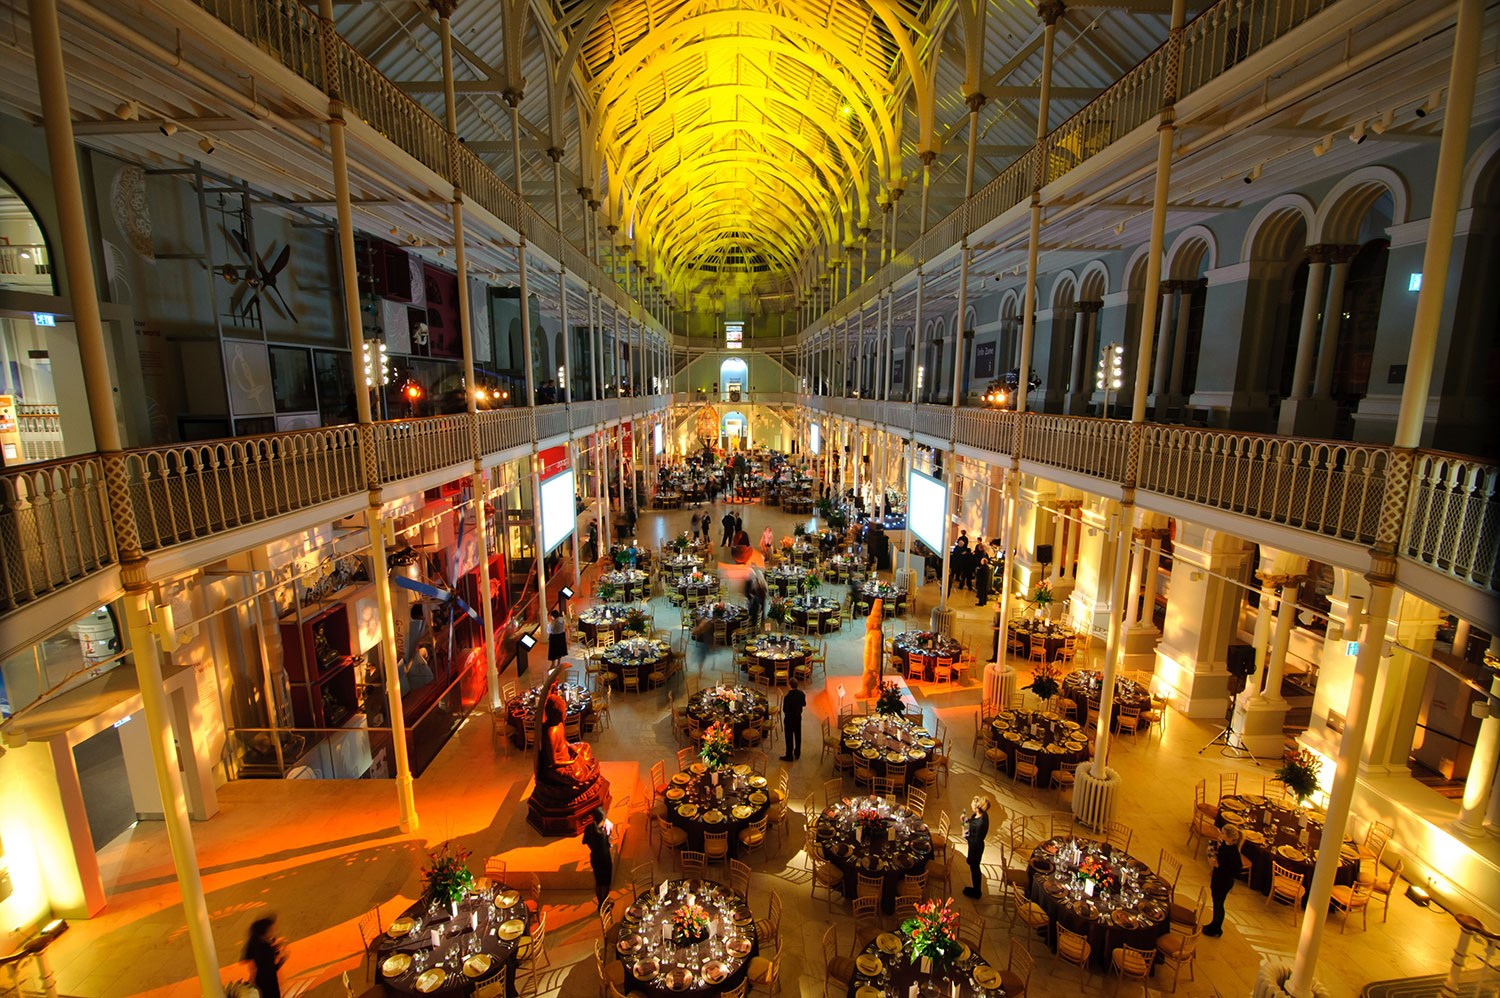 Venue Hire At National Museum Of Scotland